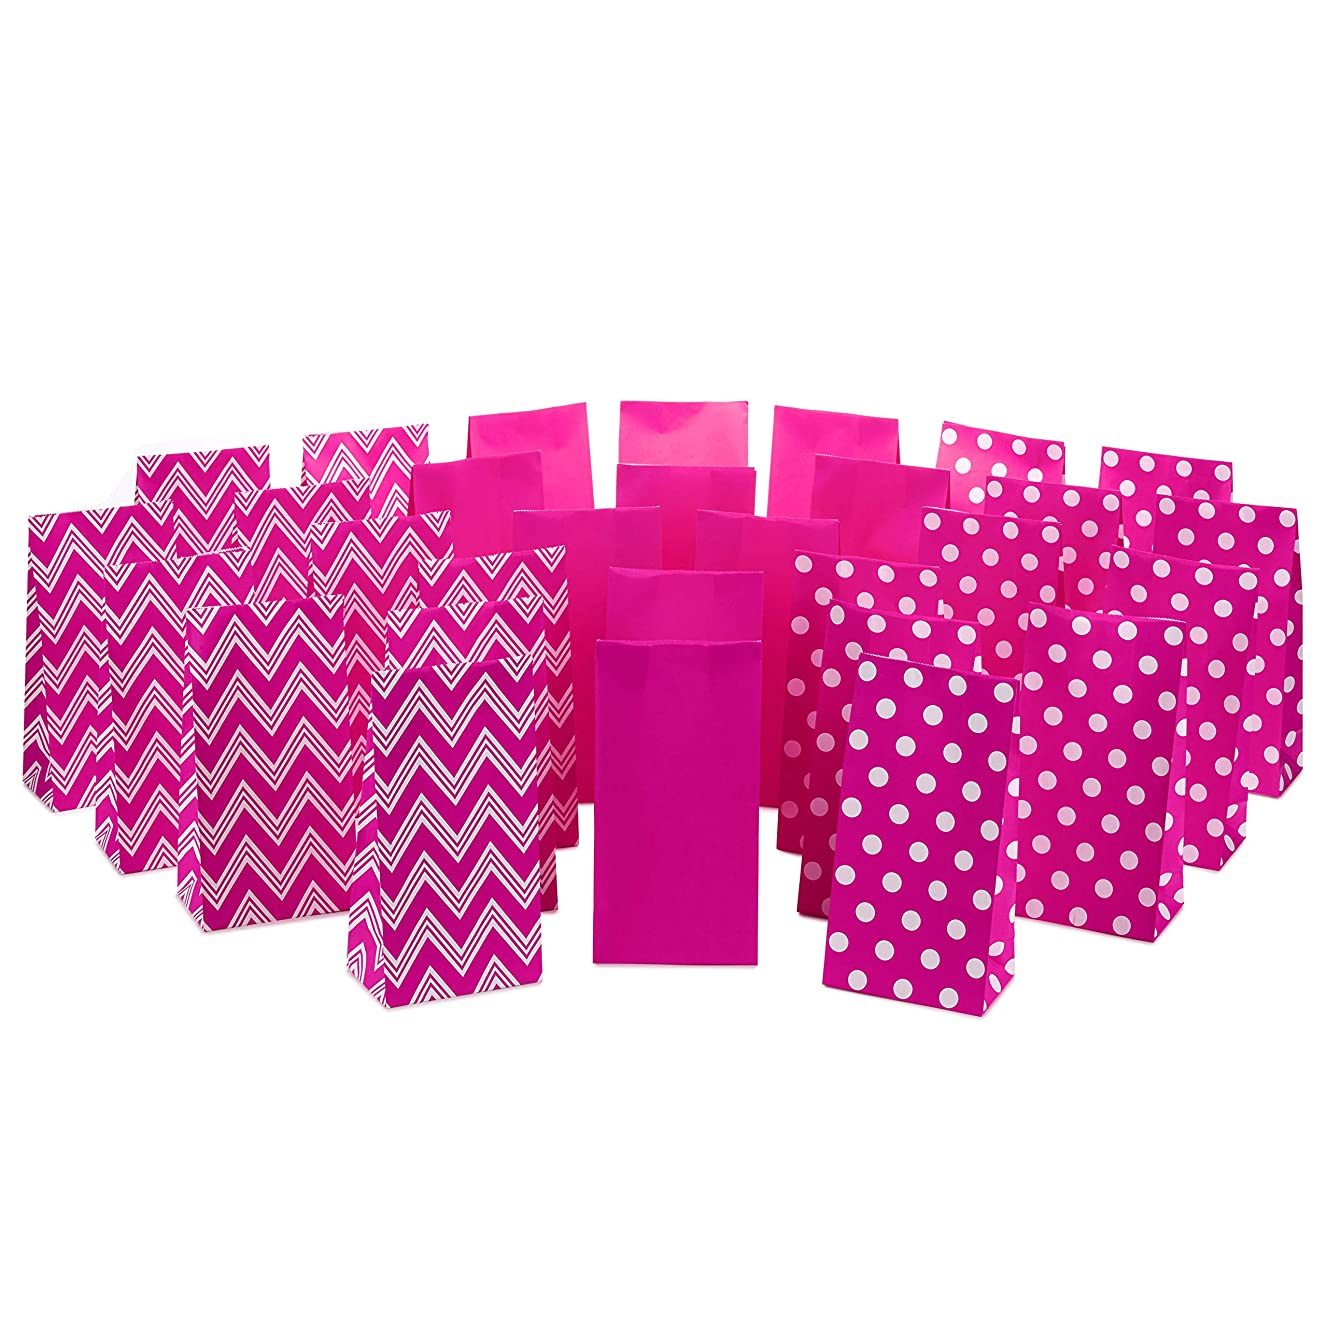 Hallmark Pink Assorted Favor Bags (30 Ct., 10 each of Chevron, White Dots, Solid Pink)